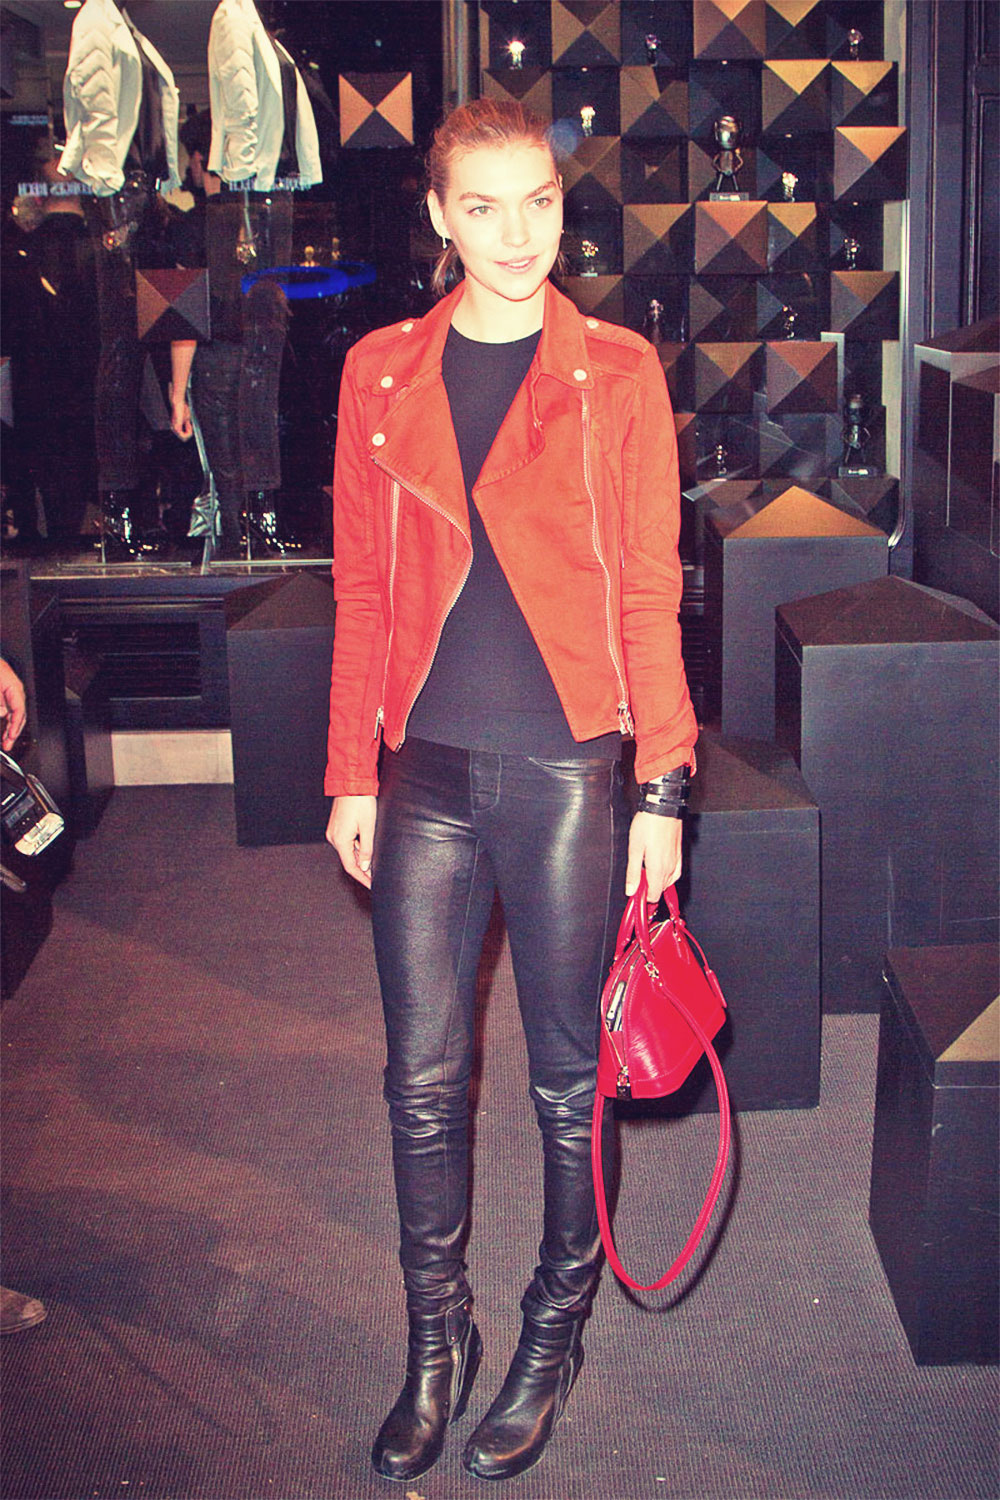 Arizona Muse attending the Karl Lagerfeld's Concept Store Opening